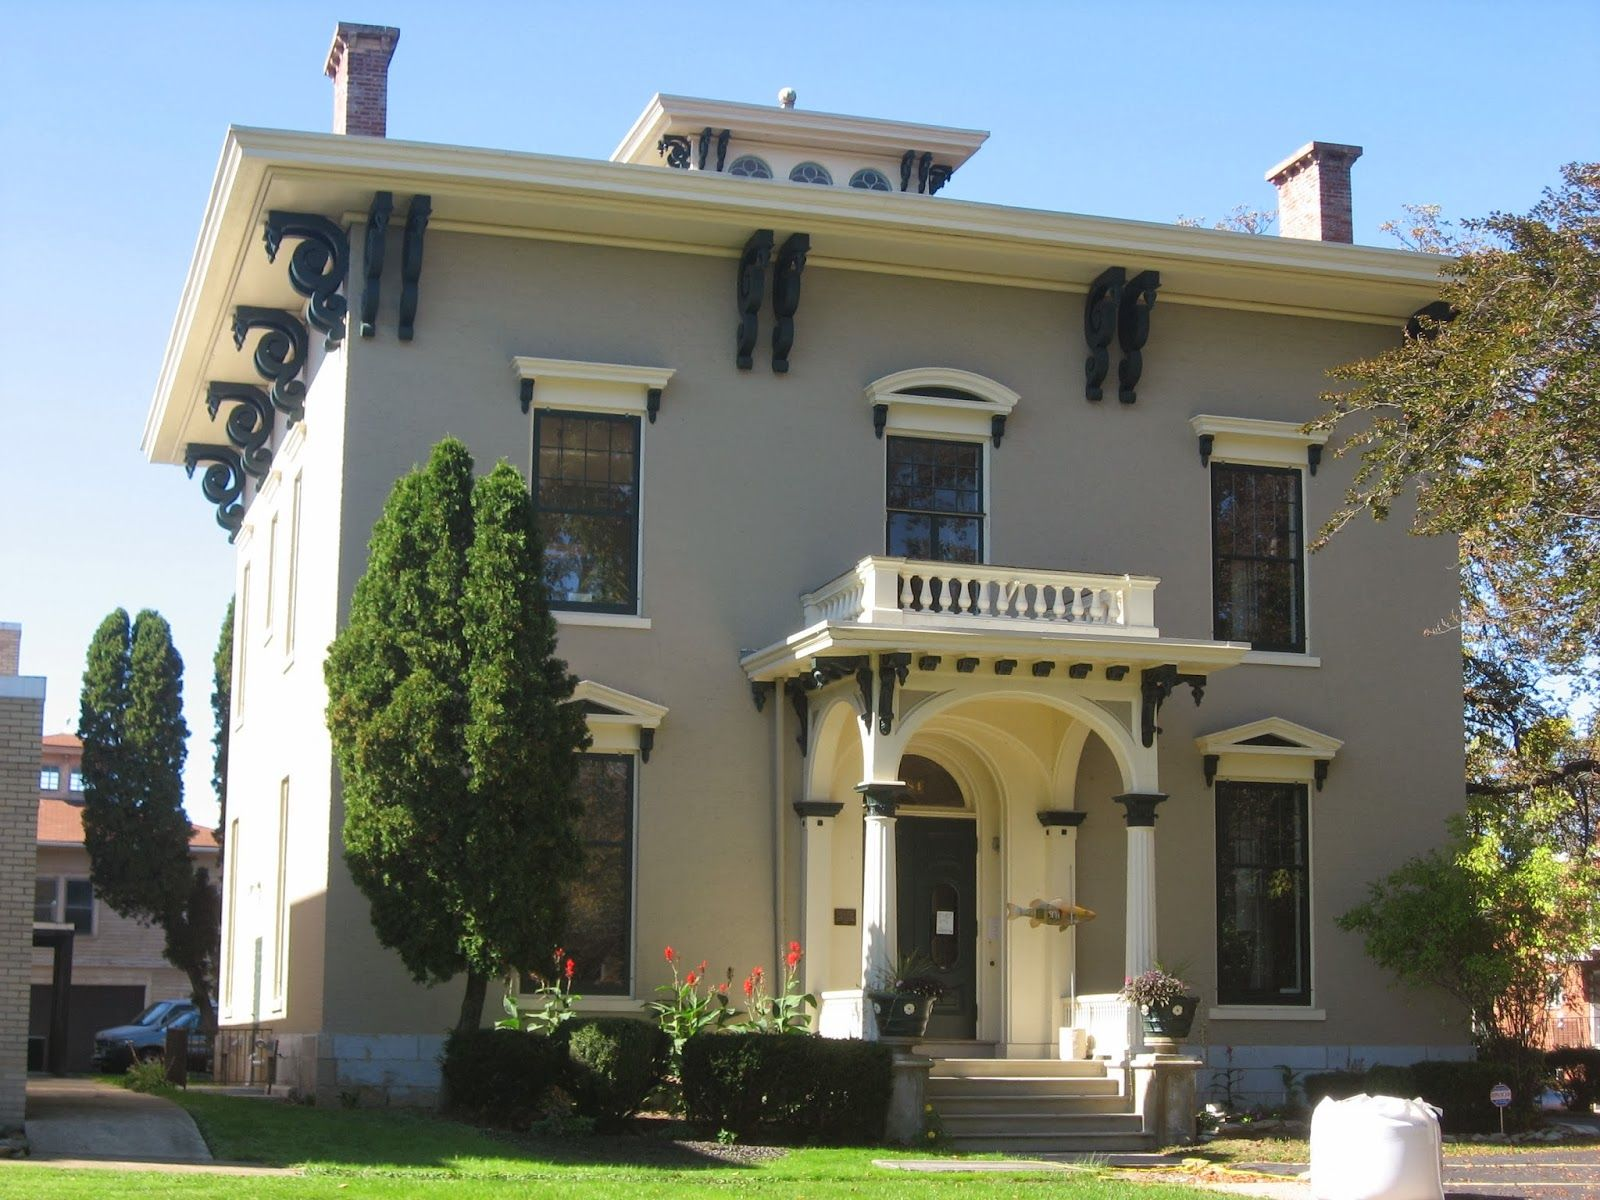 Italianate Style House Interior A Blog Devoted To American Italianate Architecture Of The